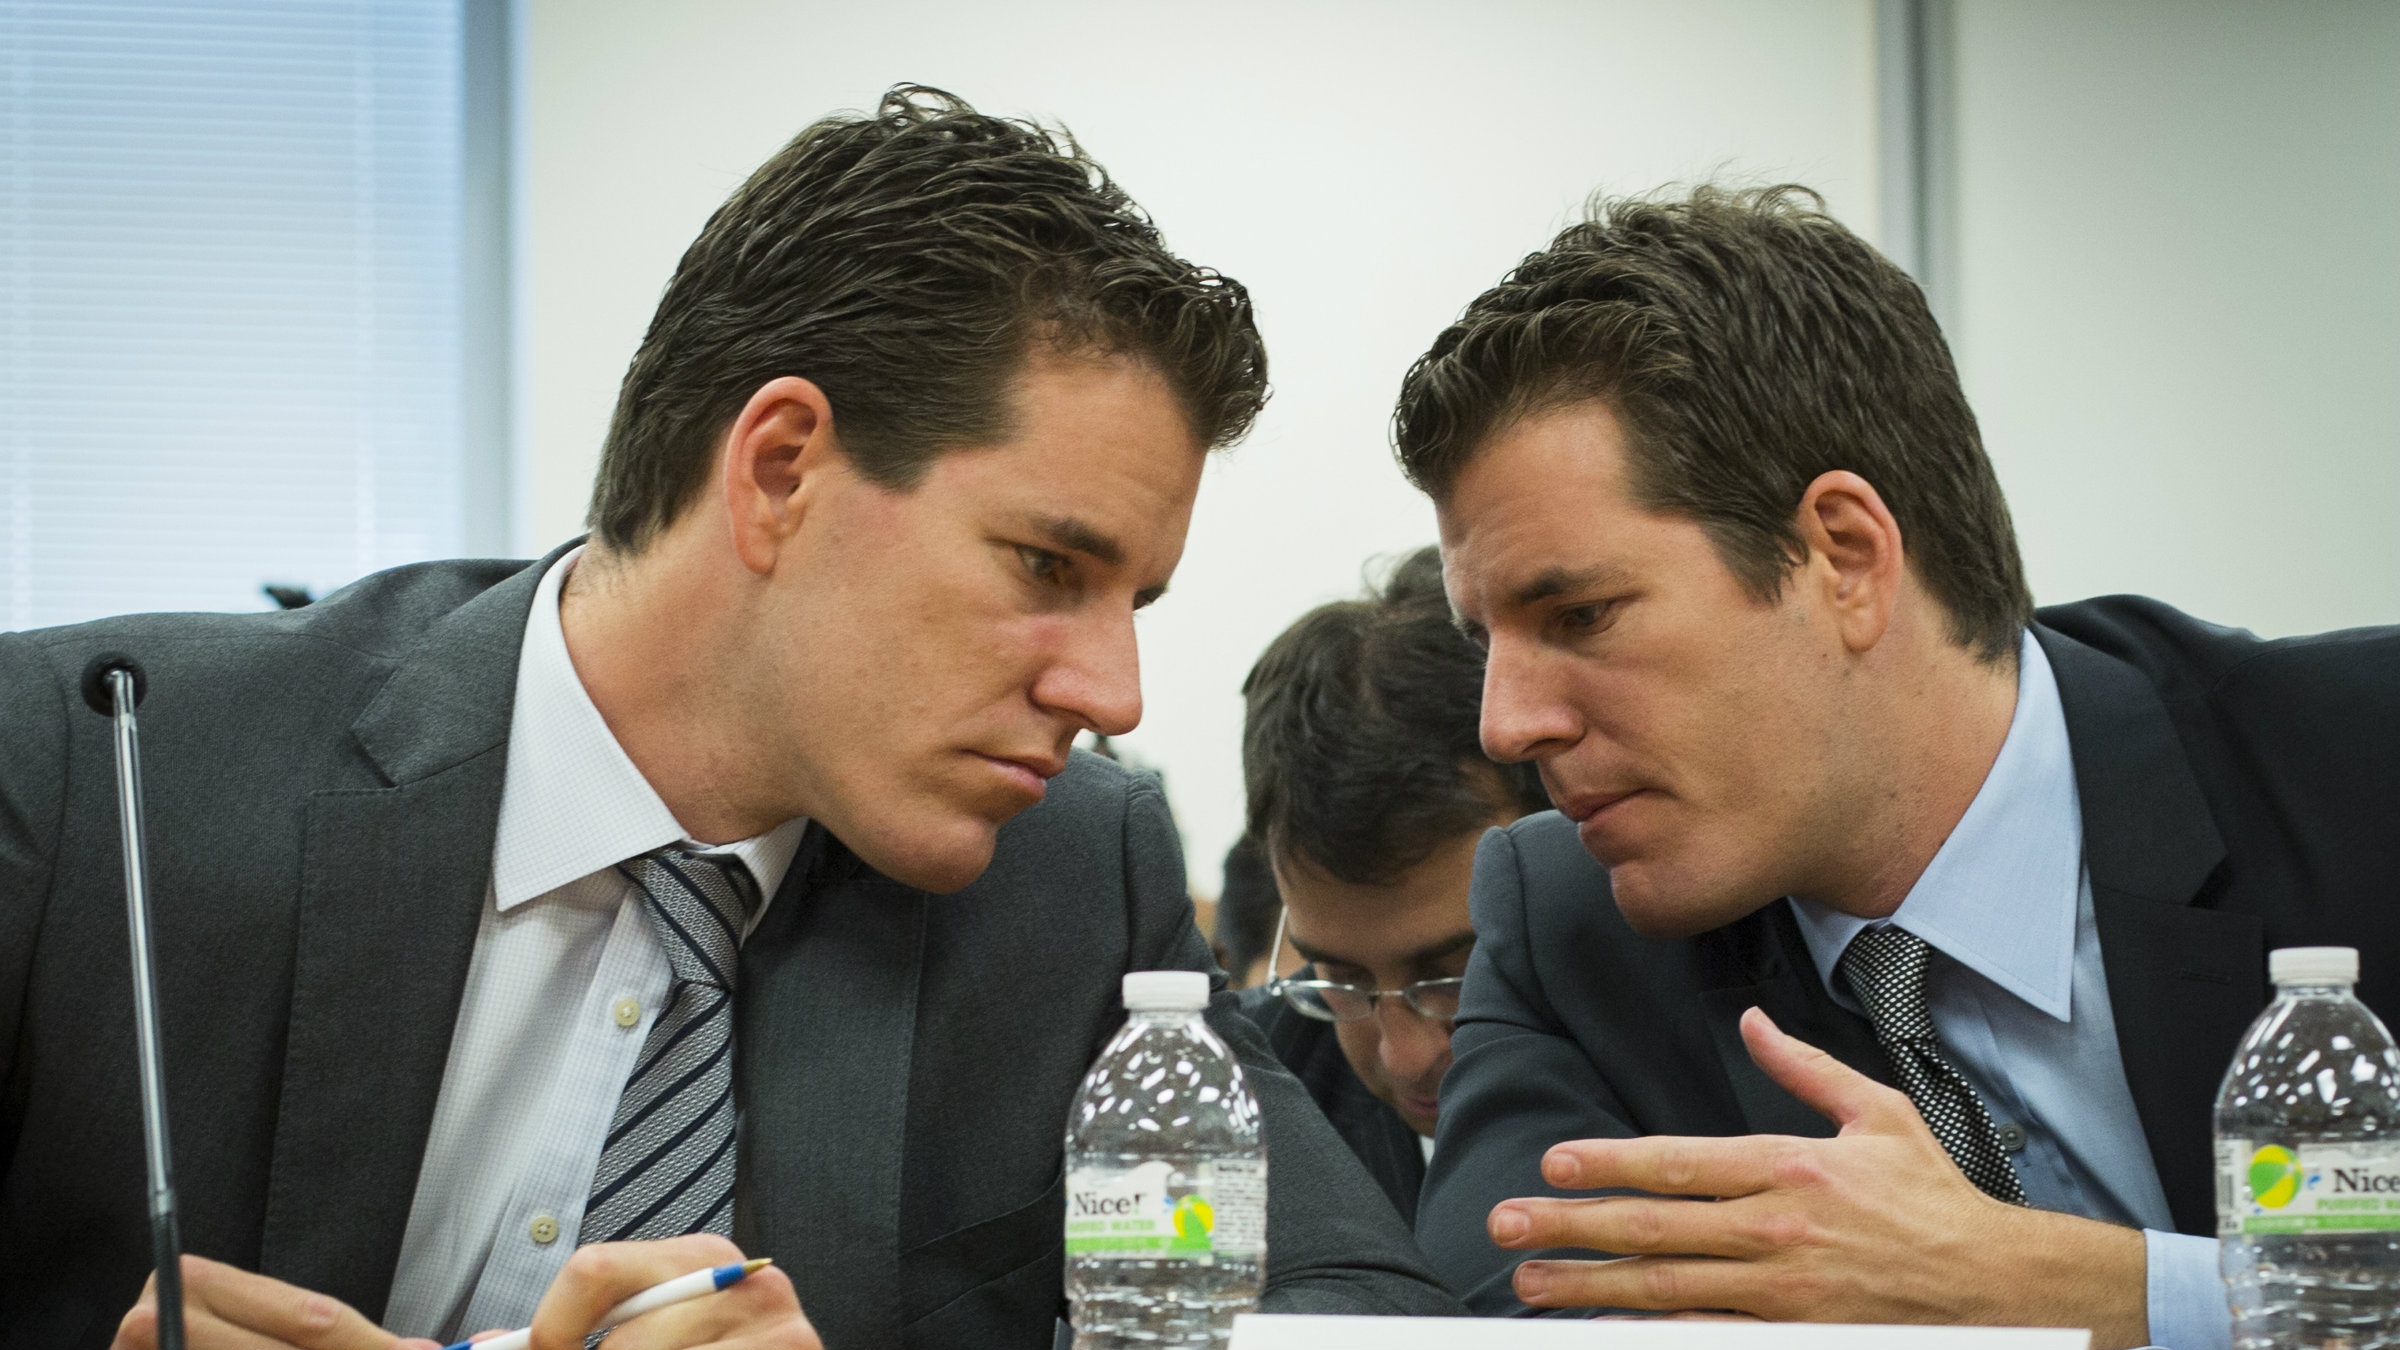 Cameron and Tyler Winklevoss talk to each other